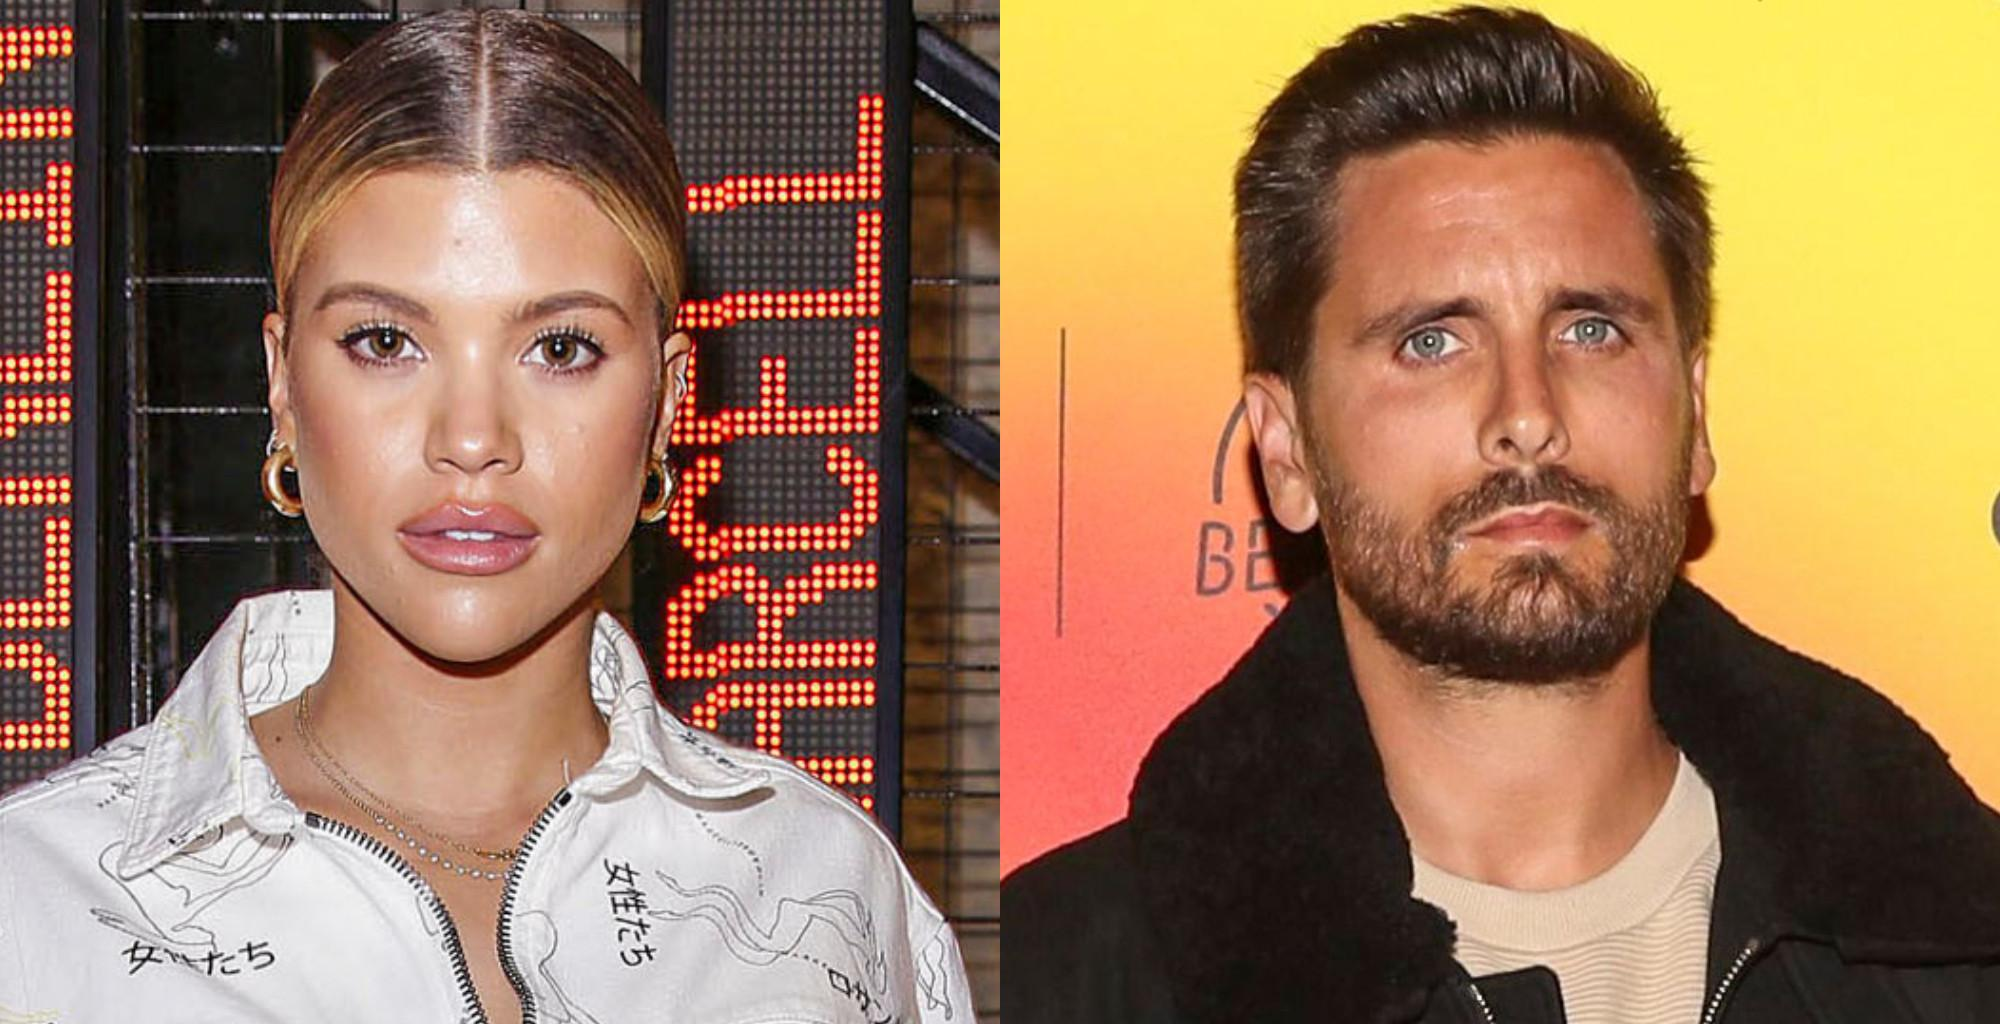 Sofia Richie And Scott Disick - Has She Moved On With Someone Else While Giving Him 'Space' To Work On His Trauma?